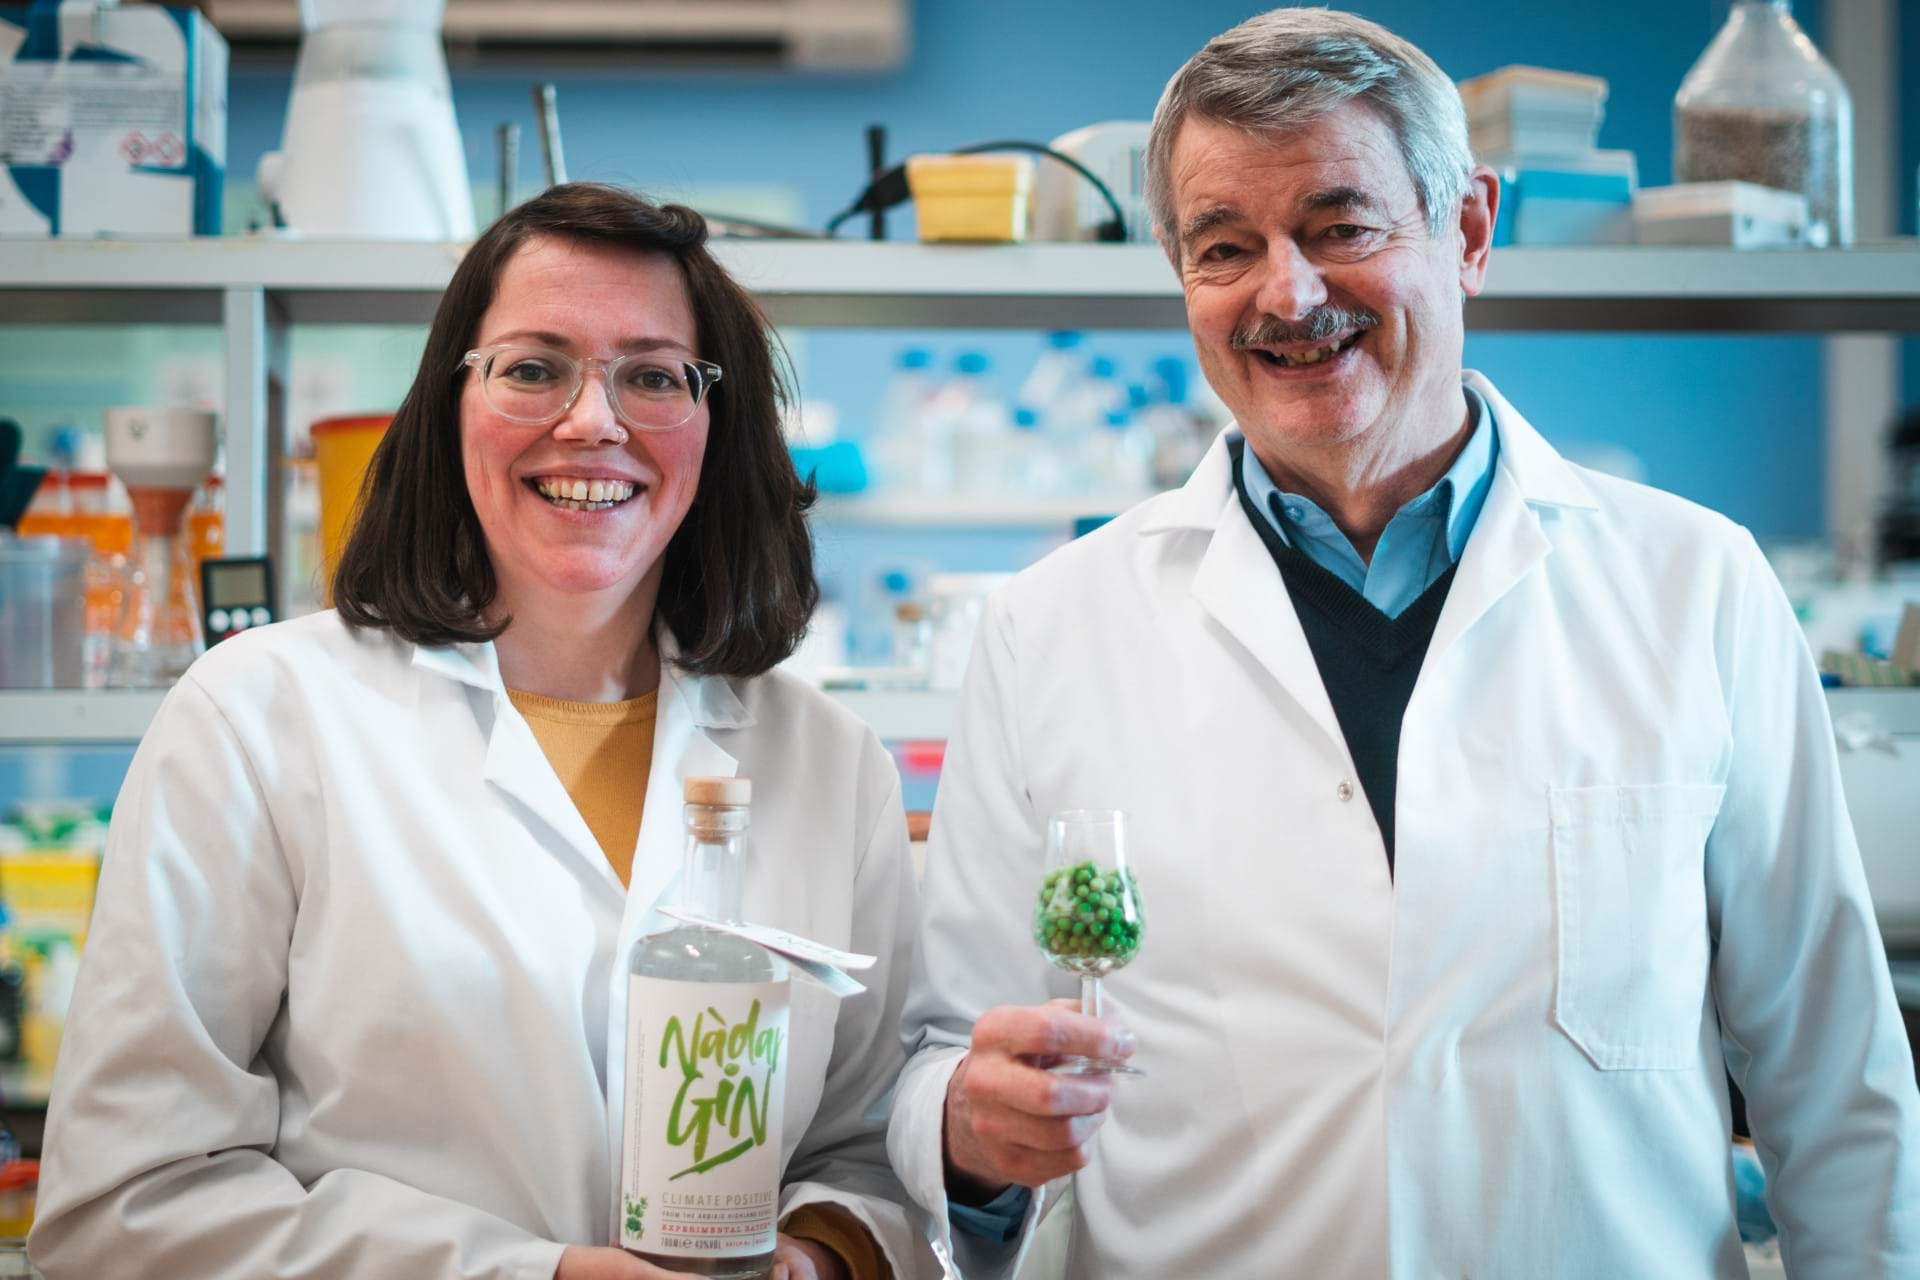 Kirsty Black and Graeme Walker holding a bottle of Nadar Gin and a glass of peas